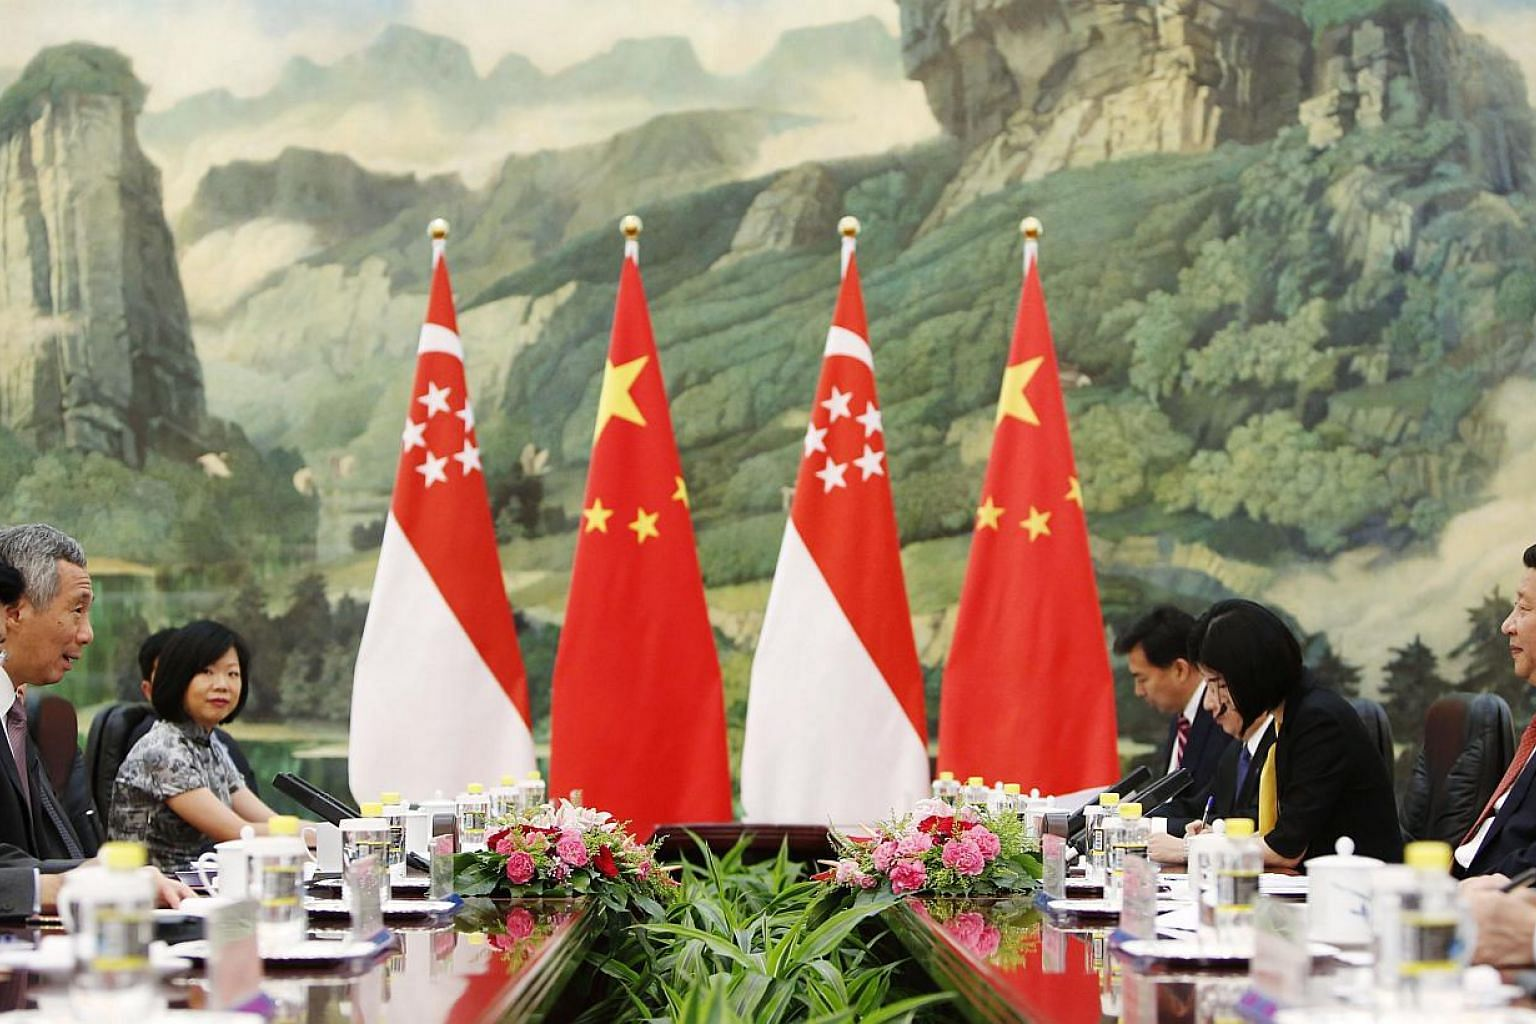 PM Lee and Chinese President Xi Jinping (right) at their meeting in Beijing yesterday. Also present were Senior Minister of State for Trade and Industry and National Development Lee Yi Shyan (left) and Senior Parliamentary Secretary for Communication